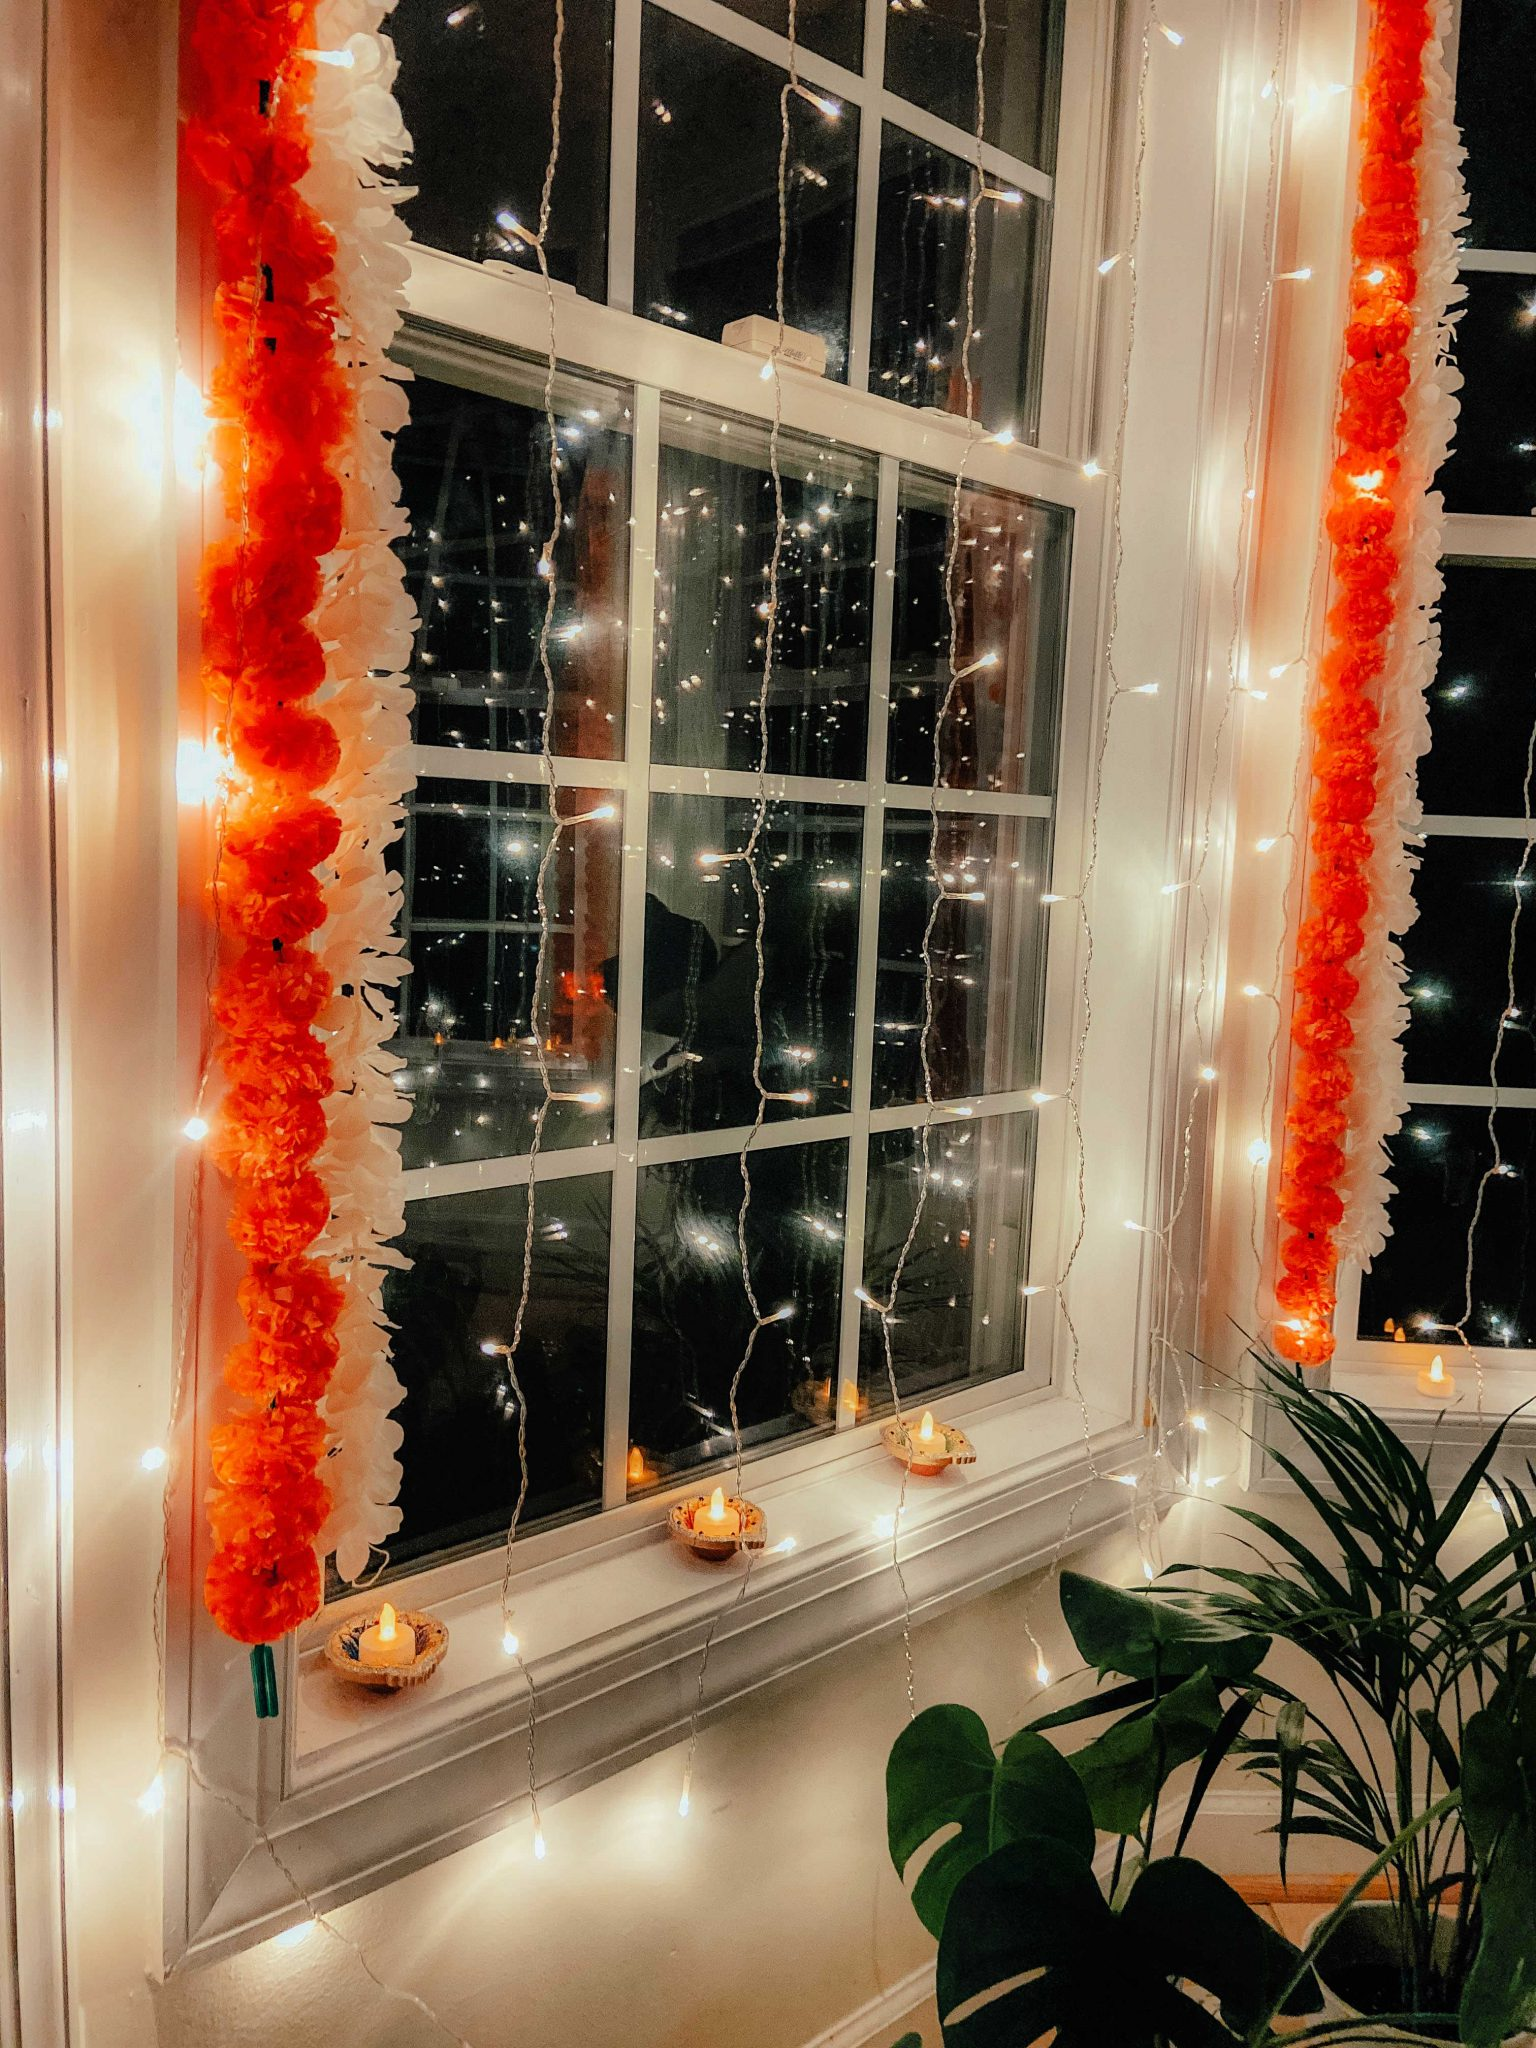 Simple Diwali Decoration ideas featured by top MD lifestyle blogger, Dreaming Loud |Diwali Decoration Ideas: image of a bay window area decorated with Wisteria garlands, Marigold Garlands, Curtain string lights, Silver Votives,Lotus diya,Colorful diya, Battery Tea lamps, and Plant stand.